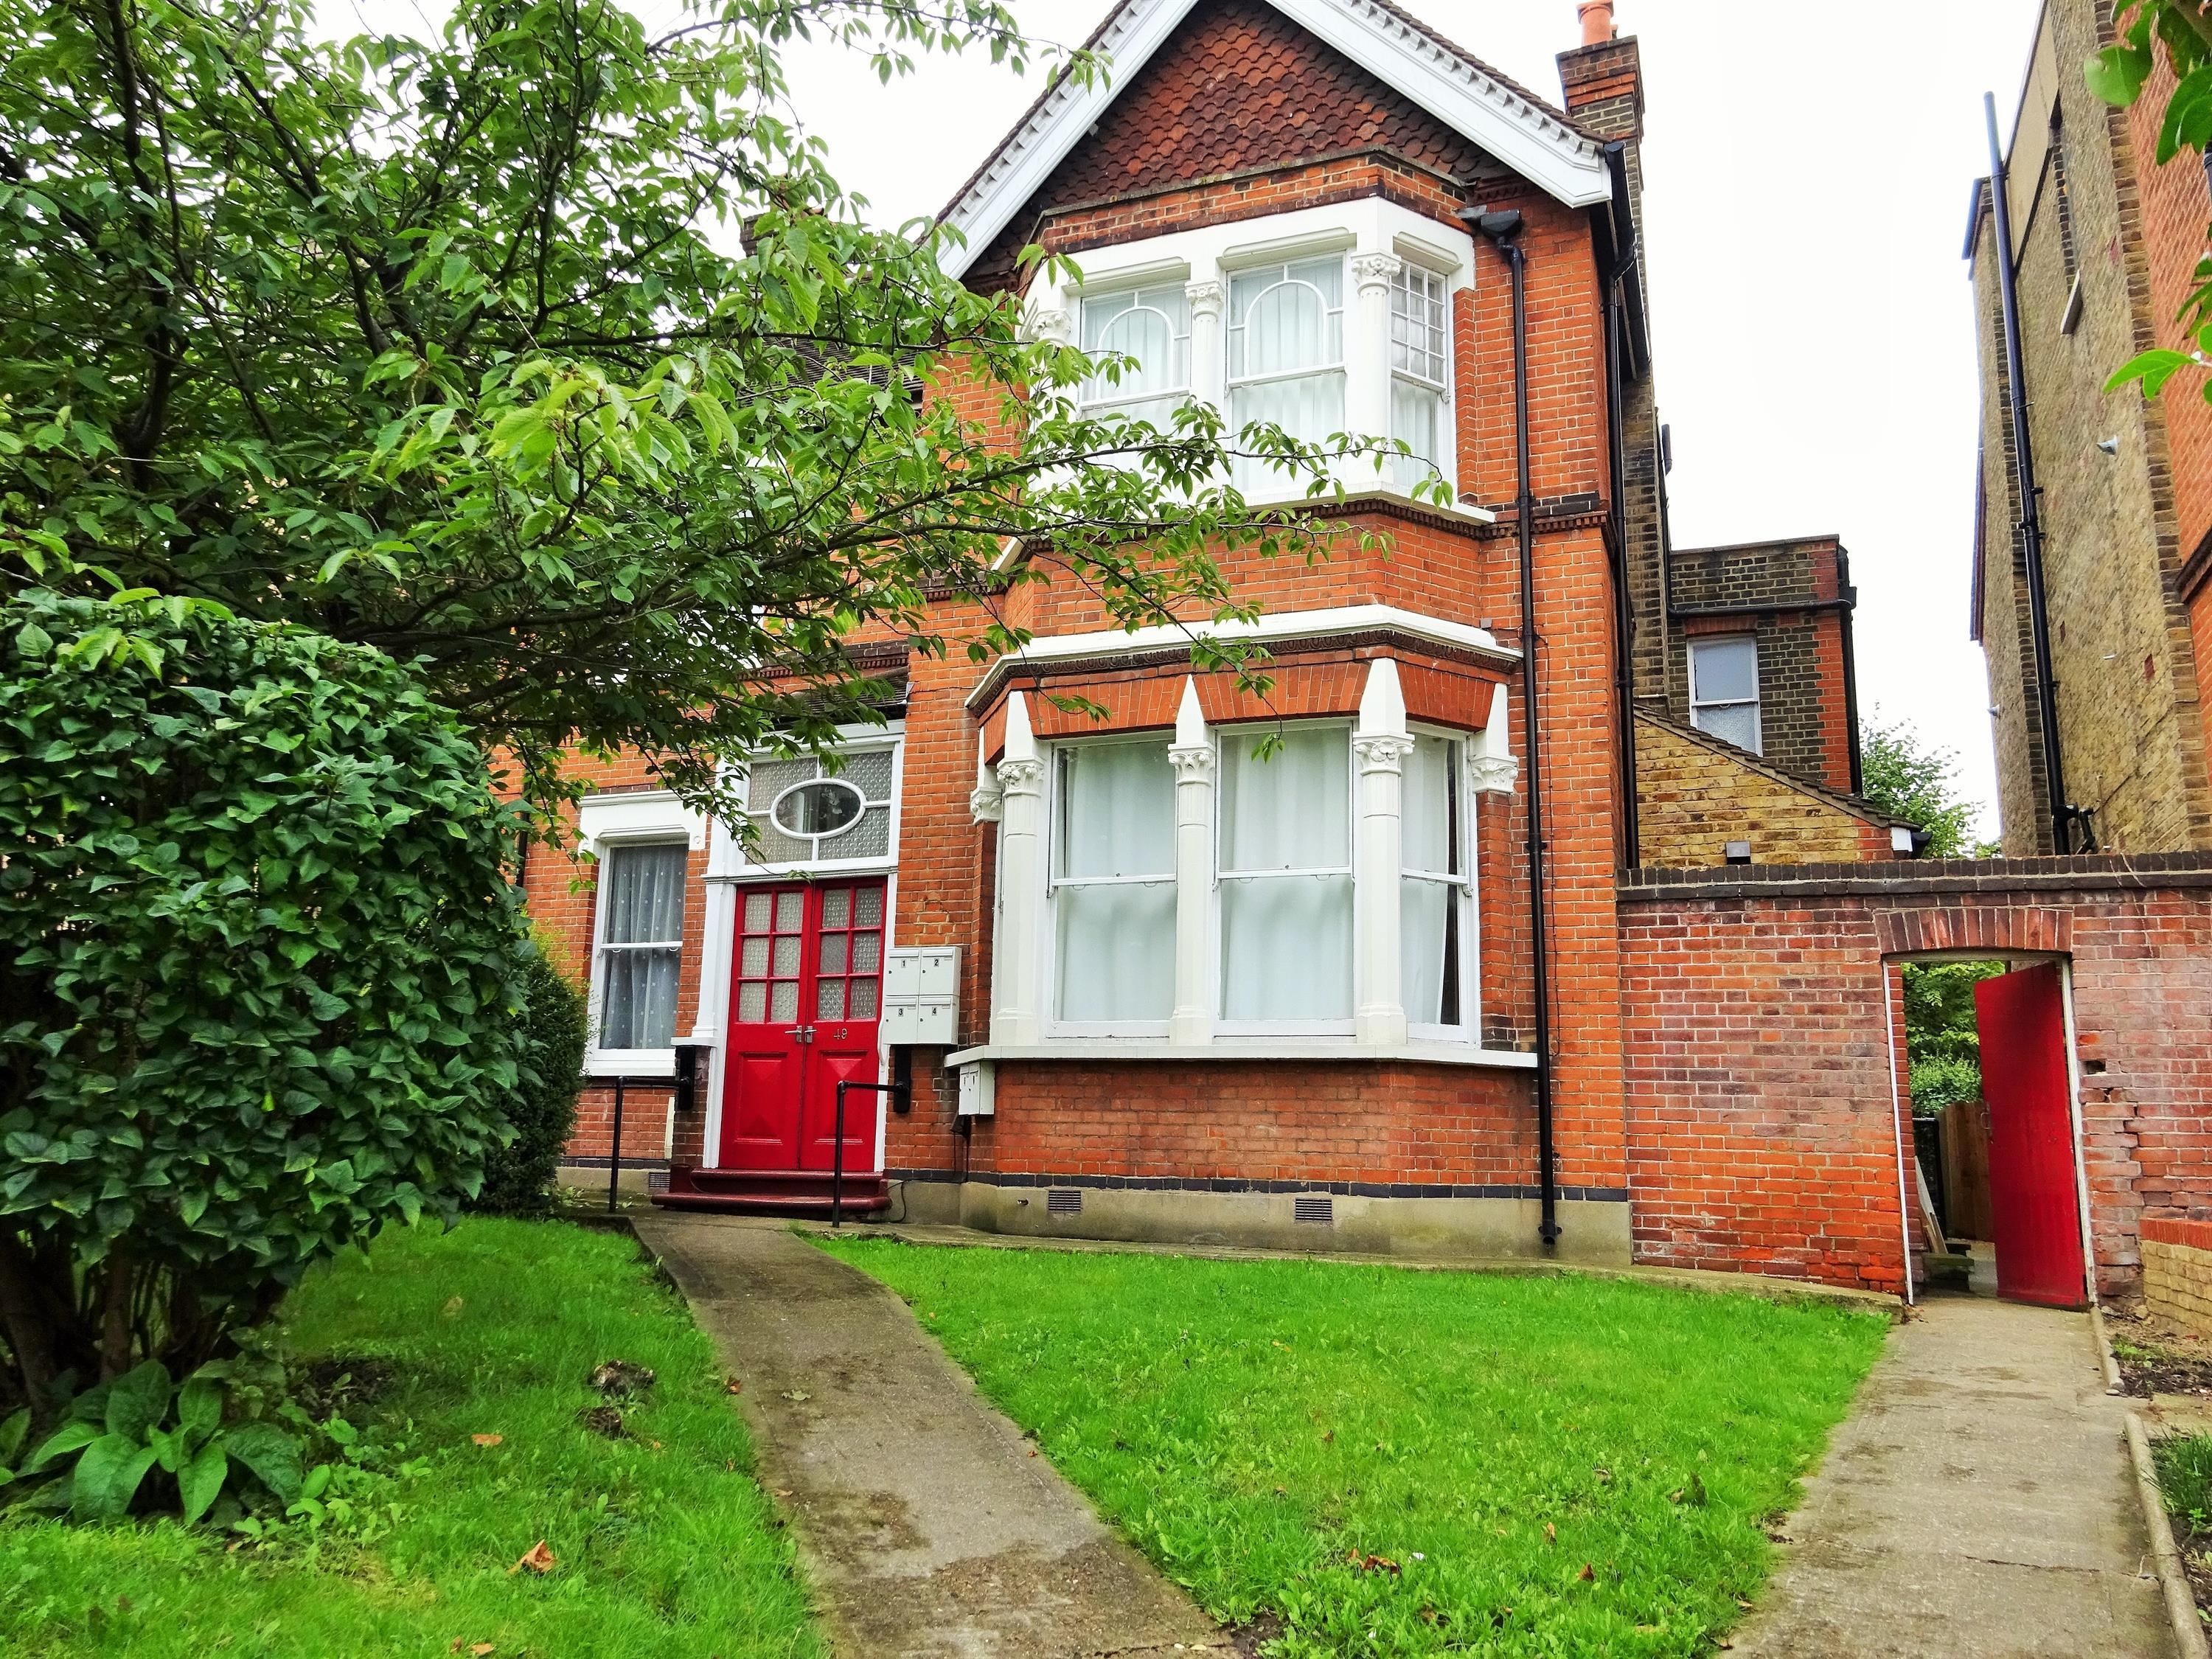 Station Road, Sidcup, Kent, DA15 7DY